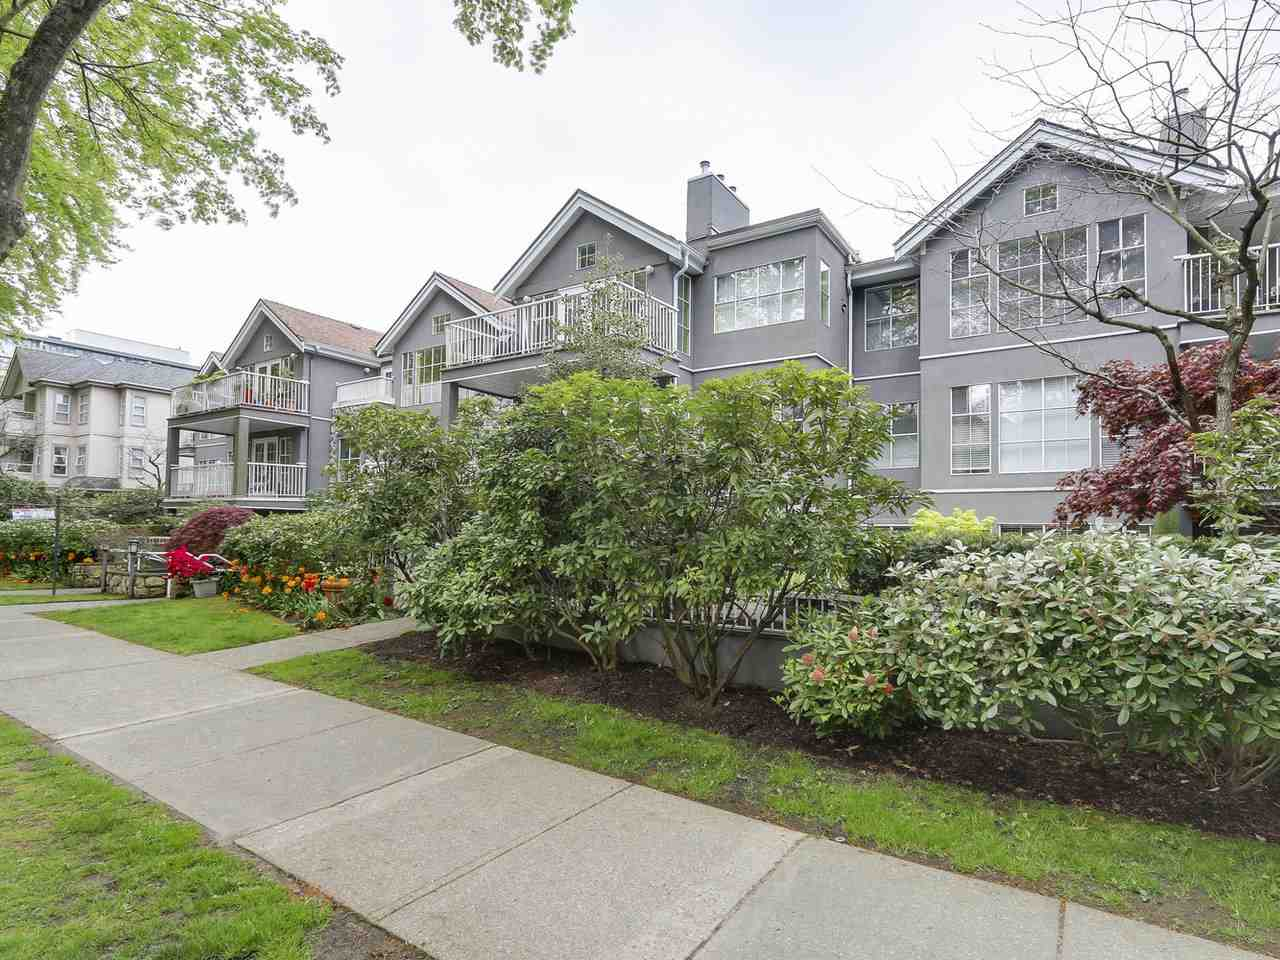 Main Photo: 104 655 W 13TH Avenue in Vancouver: Fairview VW Condo for sale (Vancouver West)  : MLS® # R2164495